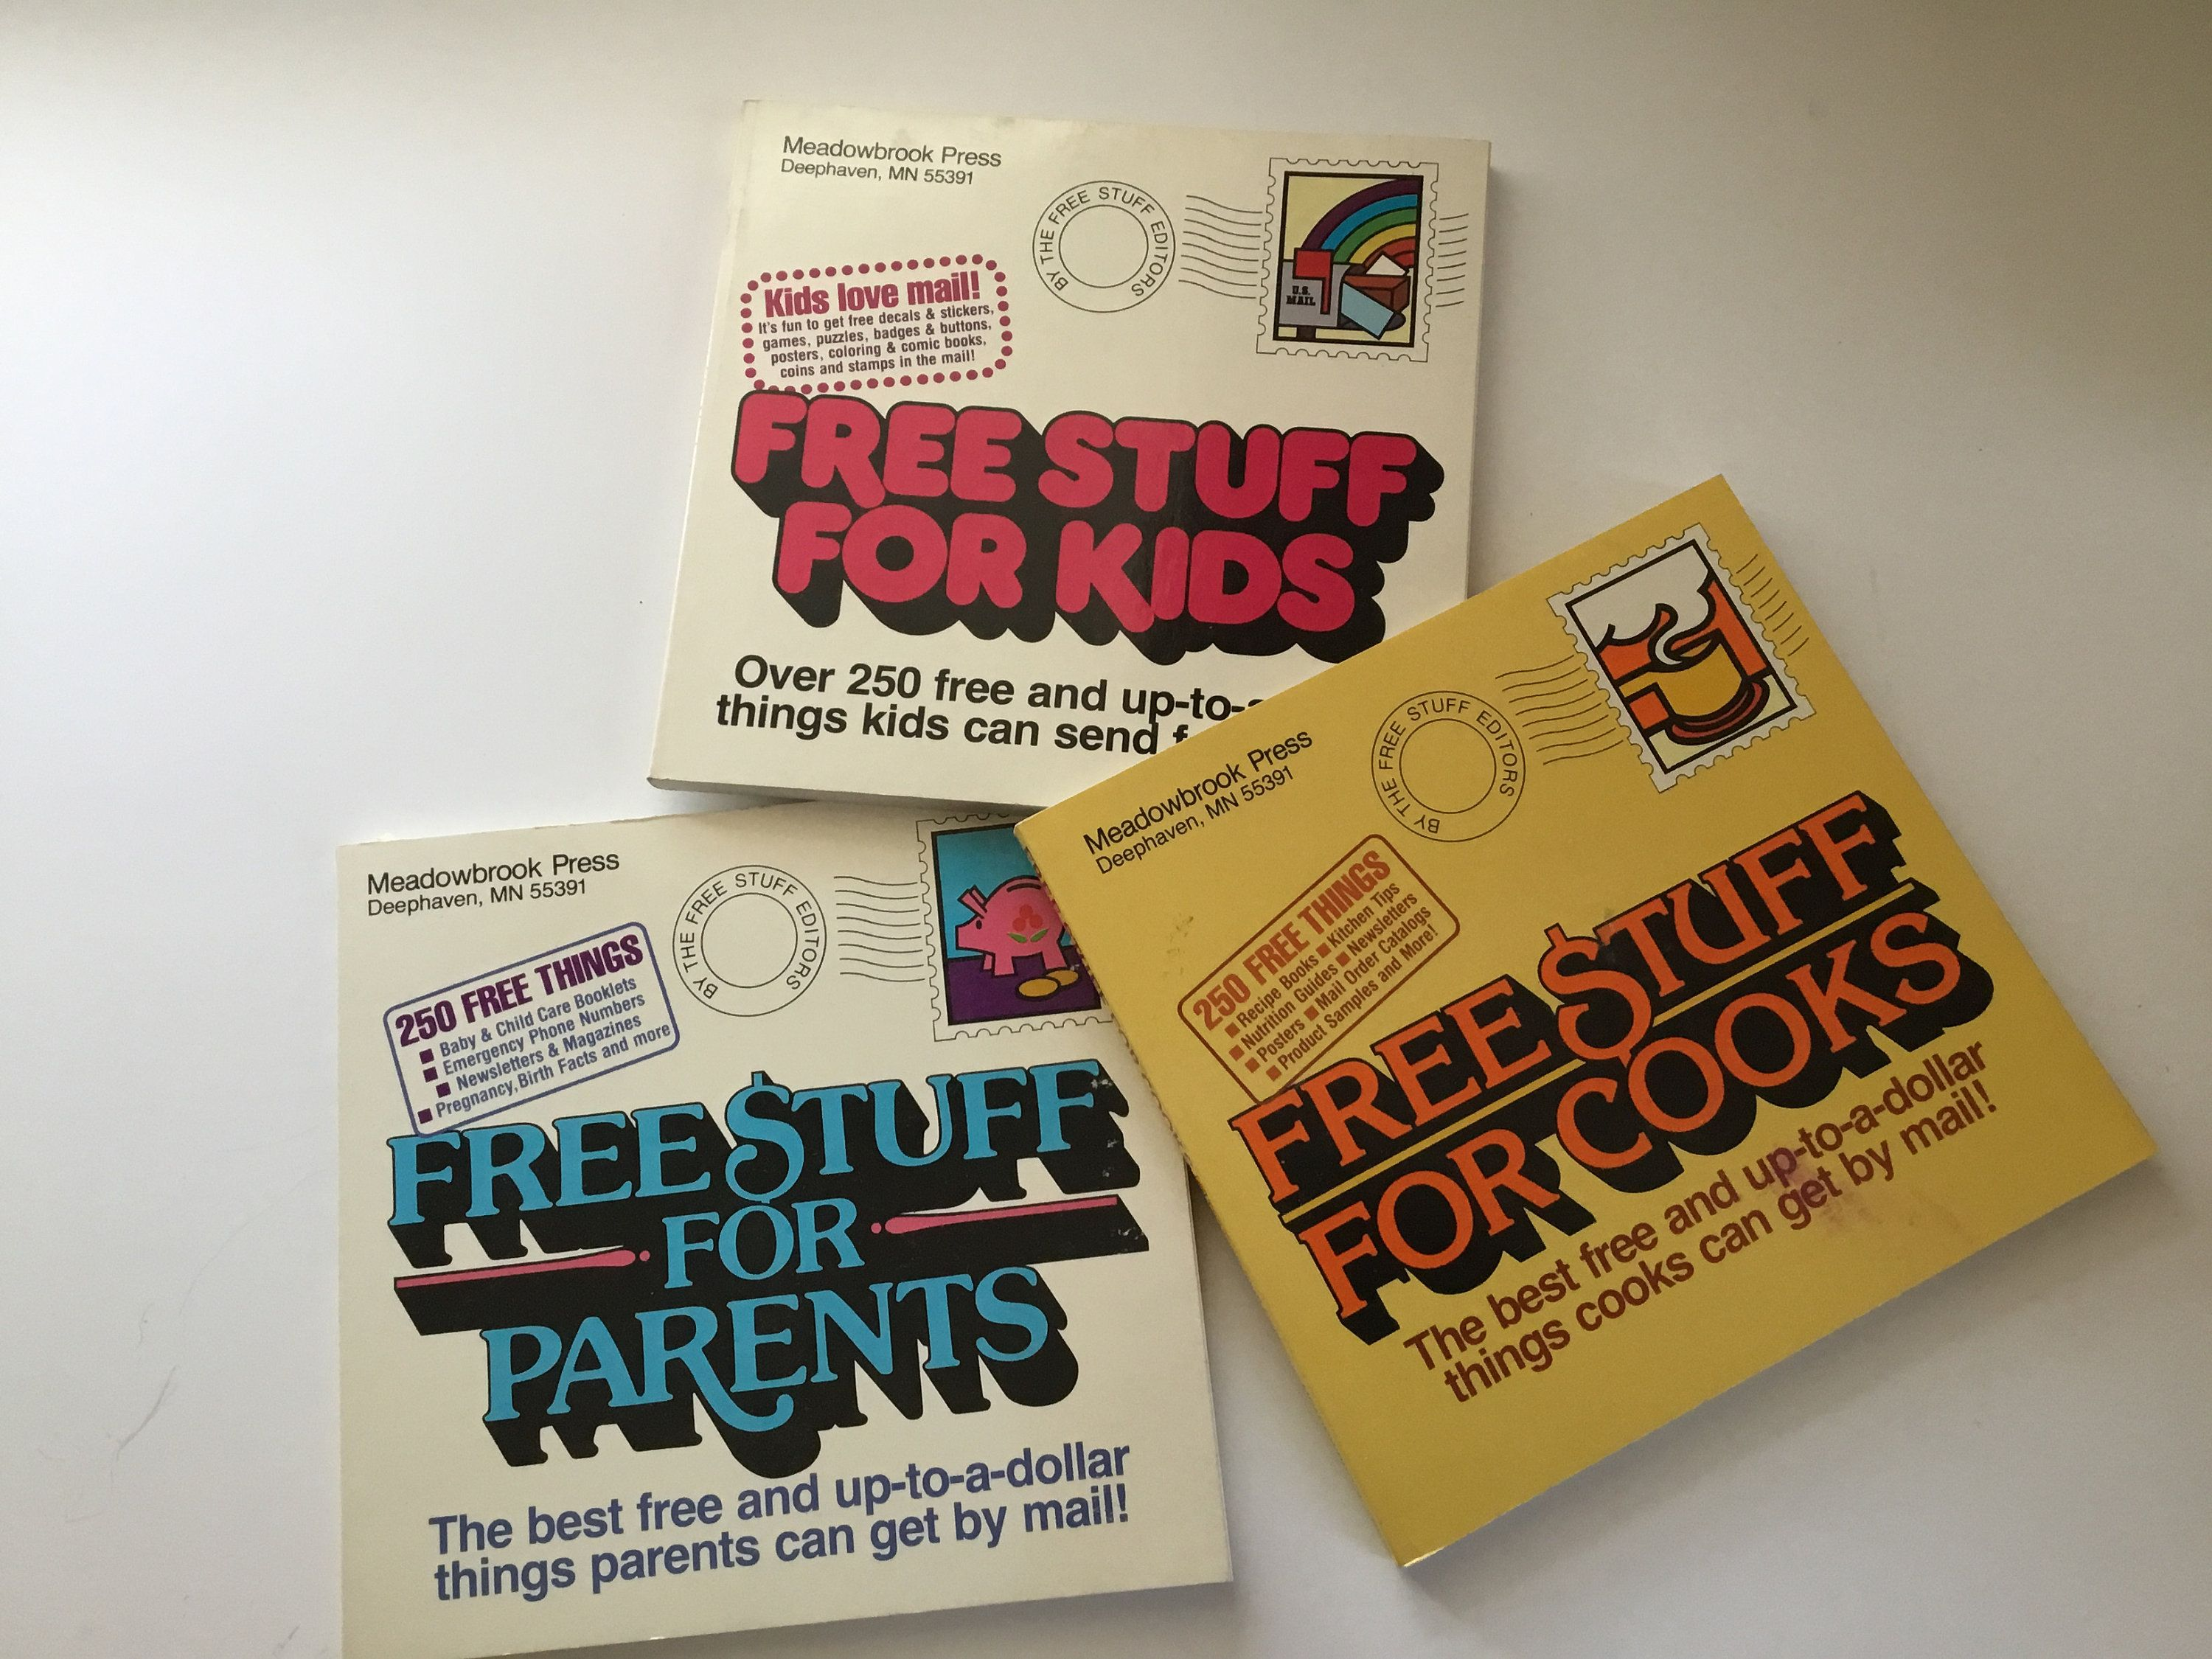 Free Stuff Mail IN Meadow Press Paperback Books From 1980s (Great